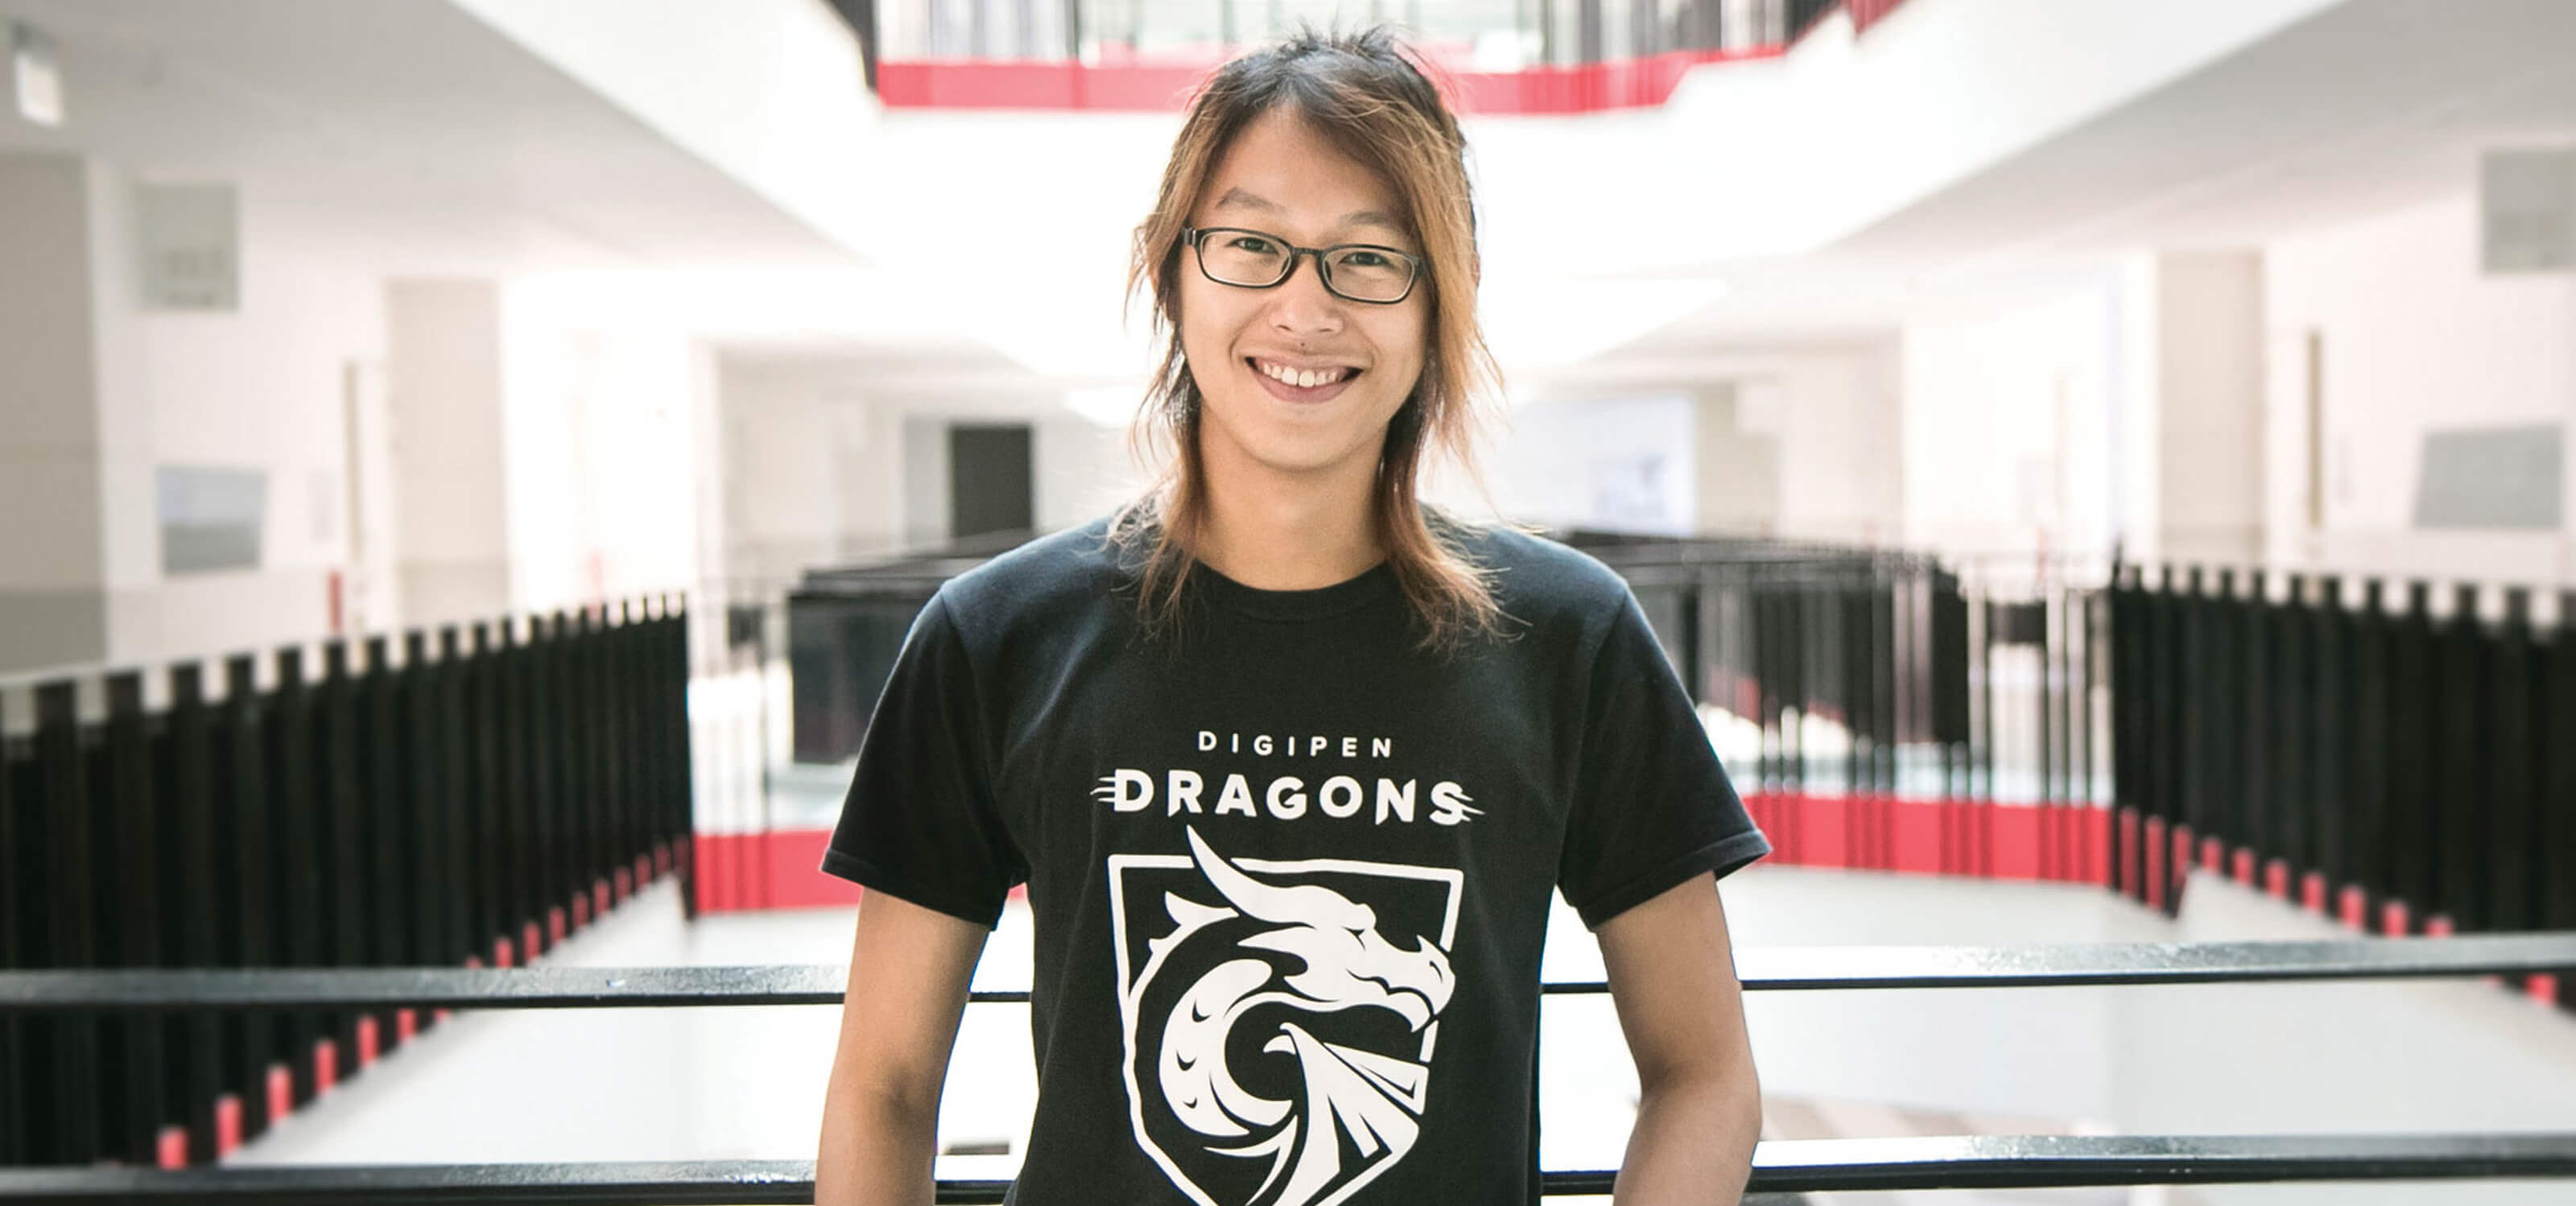 DigiPen graduate Jovi Kartolo poses for a photo at a railing on the second floor wearing a black DigiPen Dragons t-shirt